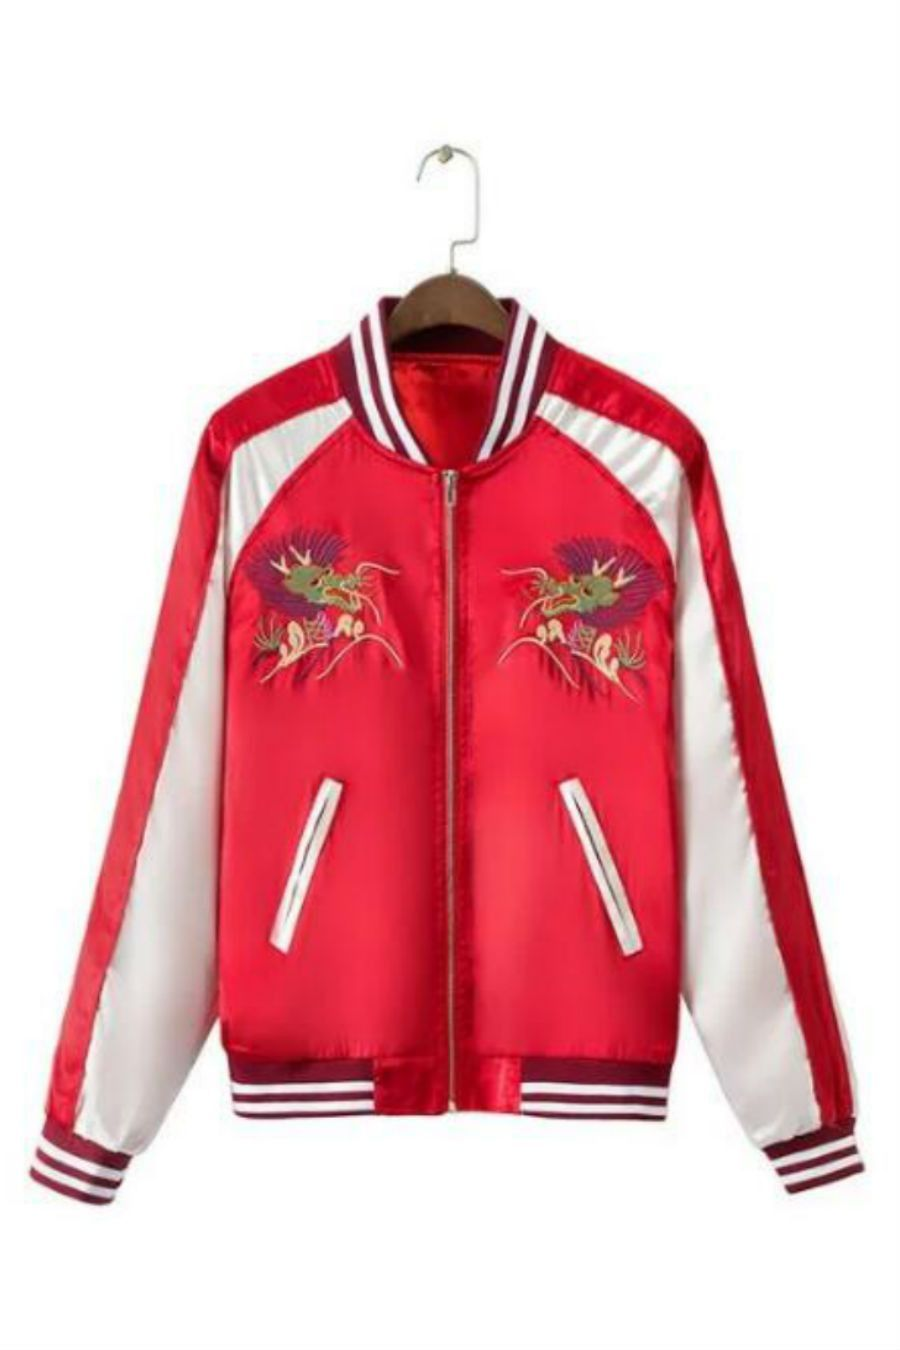 9415426af2a5 Fashion Red Dragon Embroidery Bomber Jacket